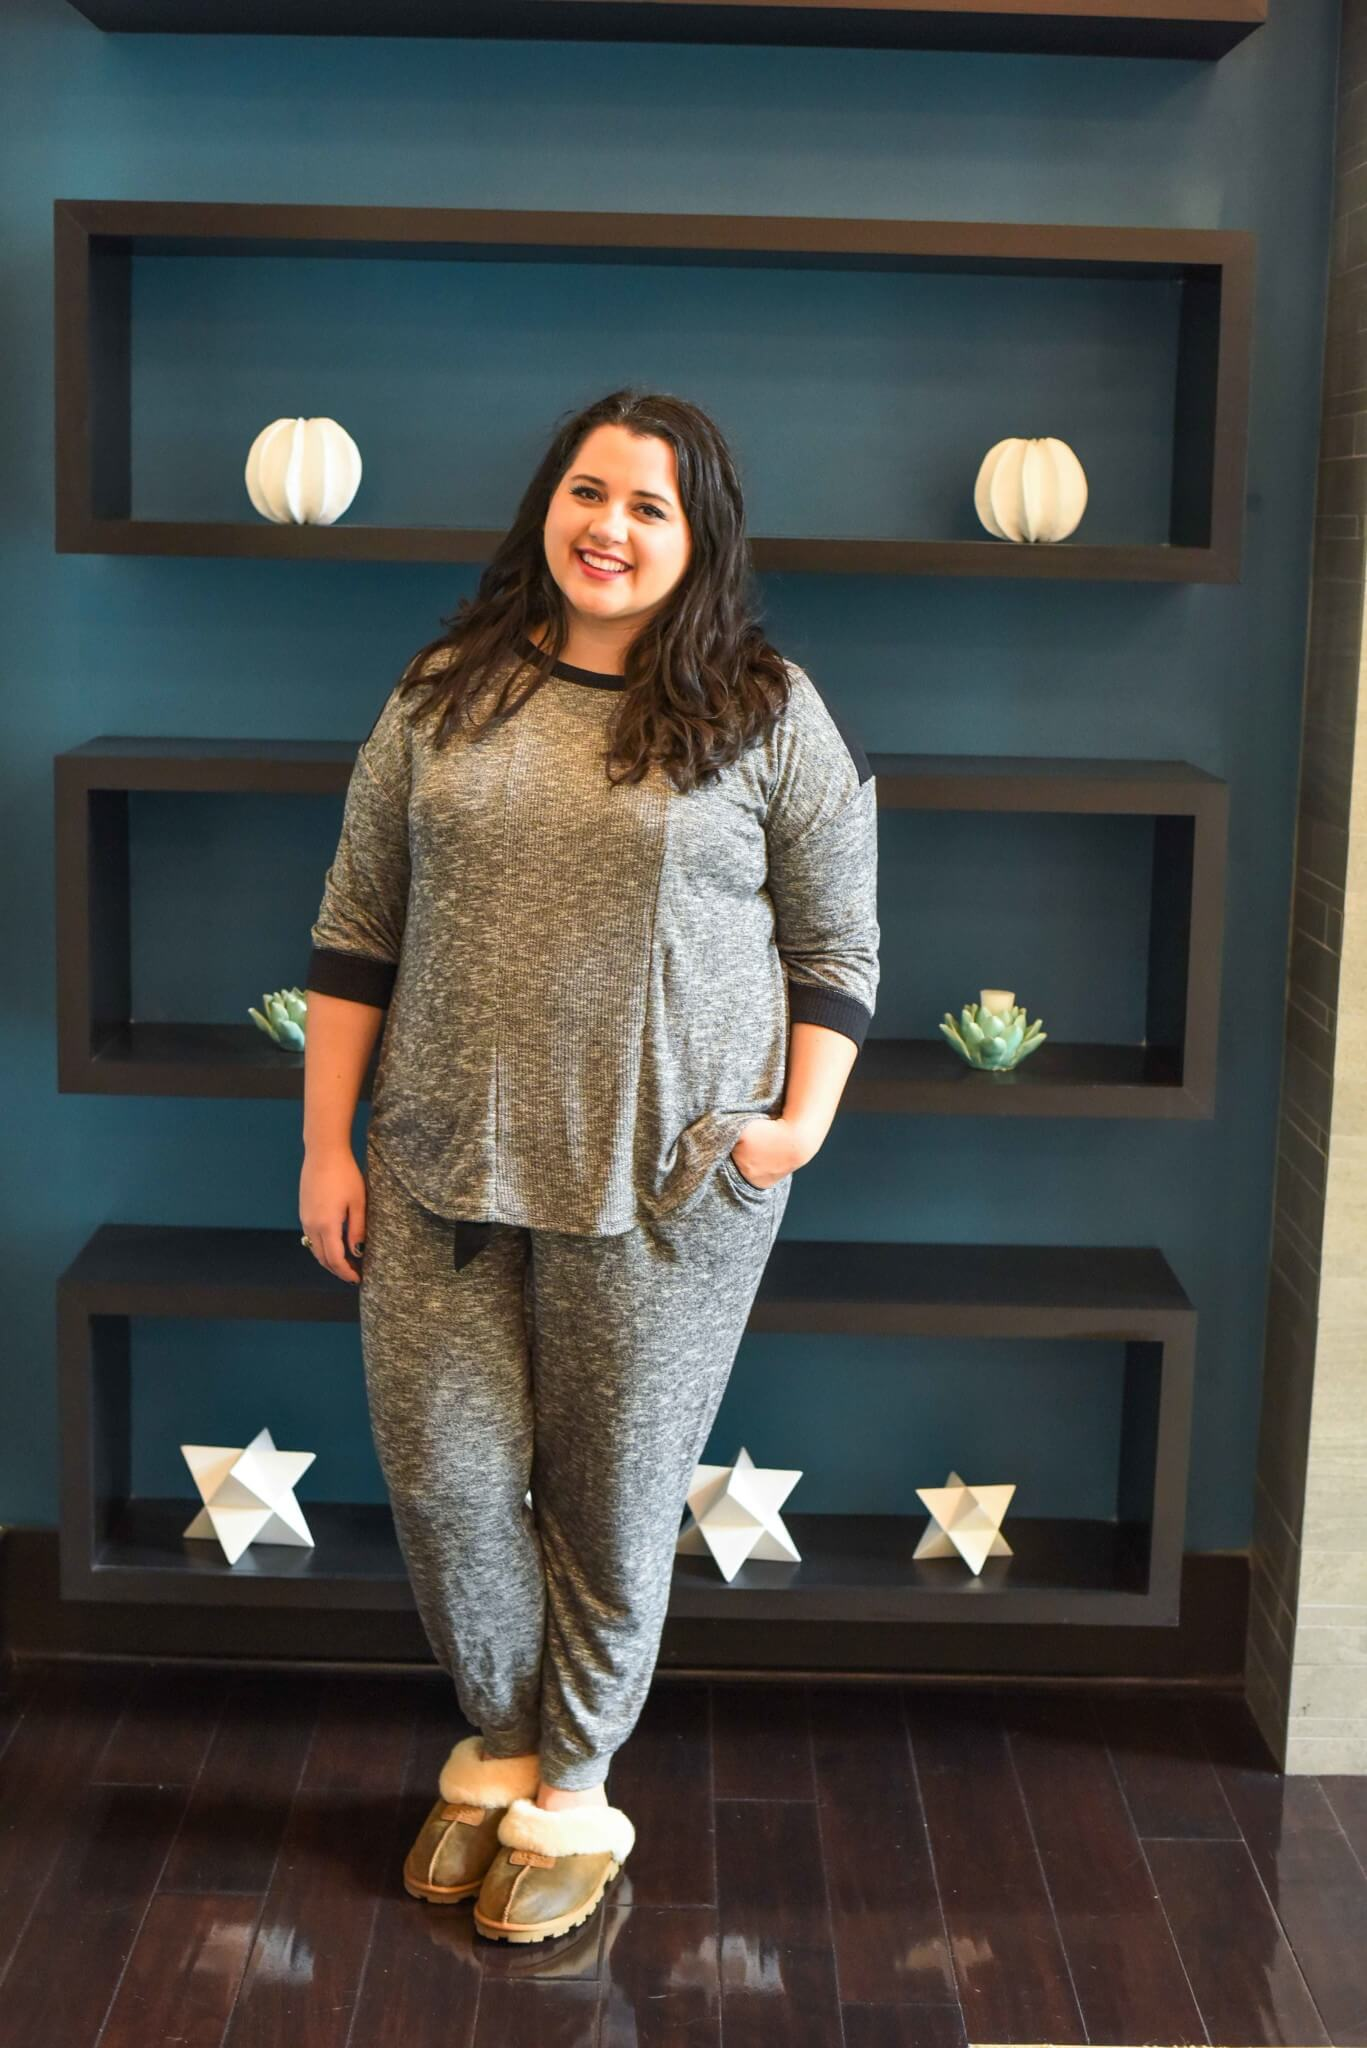 The Simply Vera Vera Wang pajamas from Kohl's have quickly become one of my go-to lounge and sleepwear sets. Not only is it comfortable, but it also won't break the bank. #plussizestyle #sleepwear - Getting a Better Night's Sleep with Kohl's Plus Size Pajamas by popular Houston fashion blogger Something Gold, Something Blue